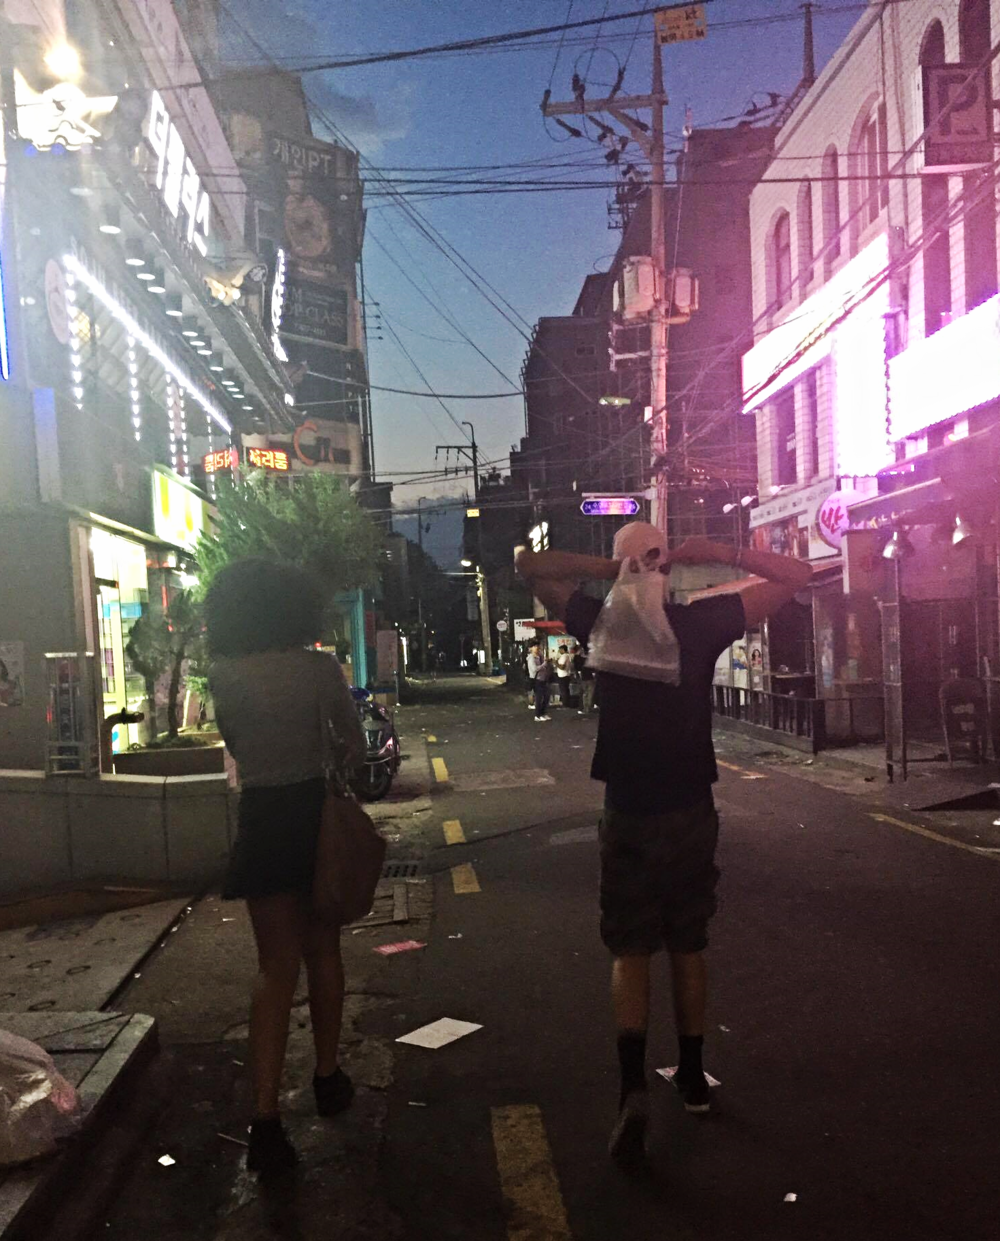 5:00 a.m in Busan. Nights/mornings like these are one like no other.